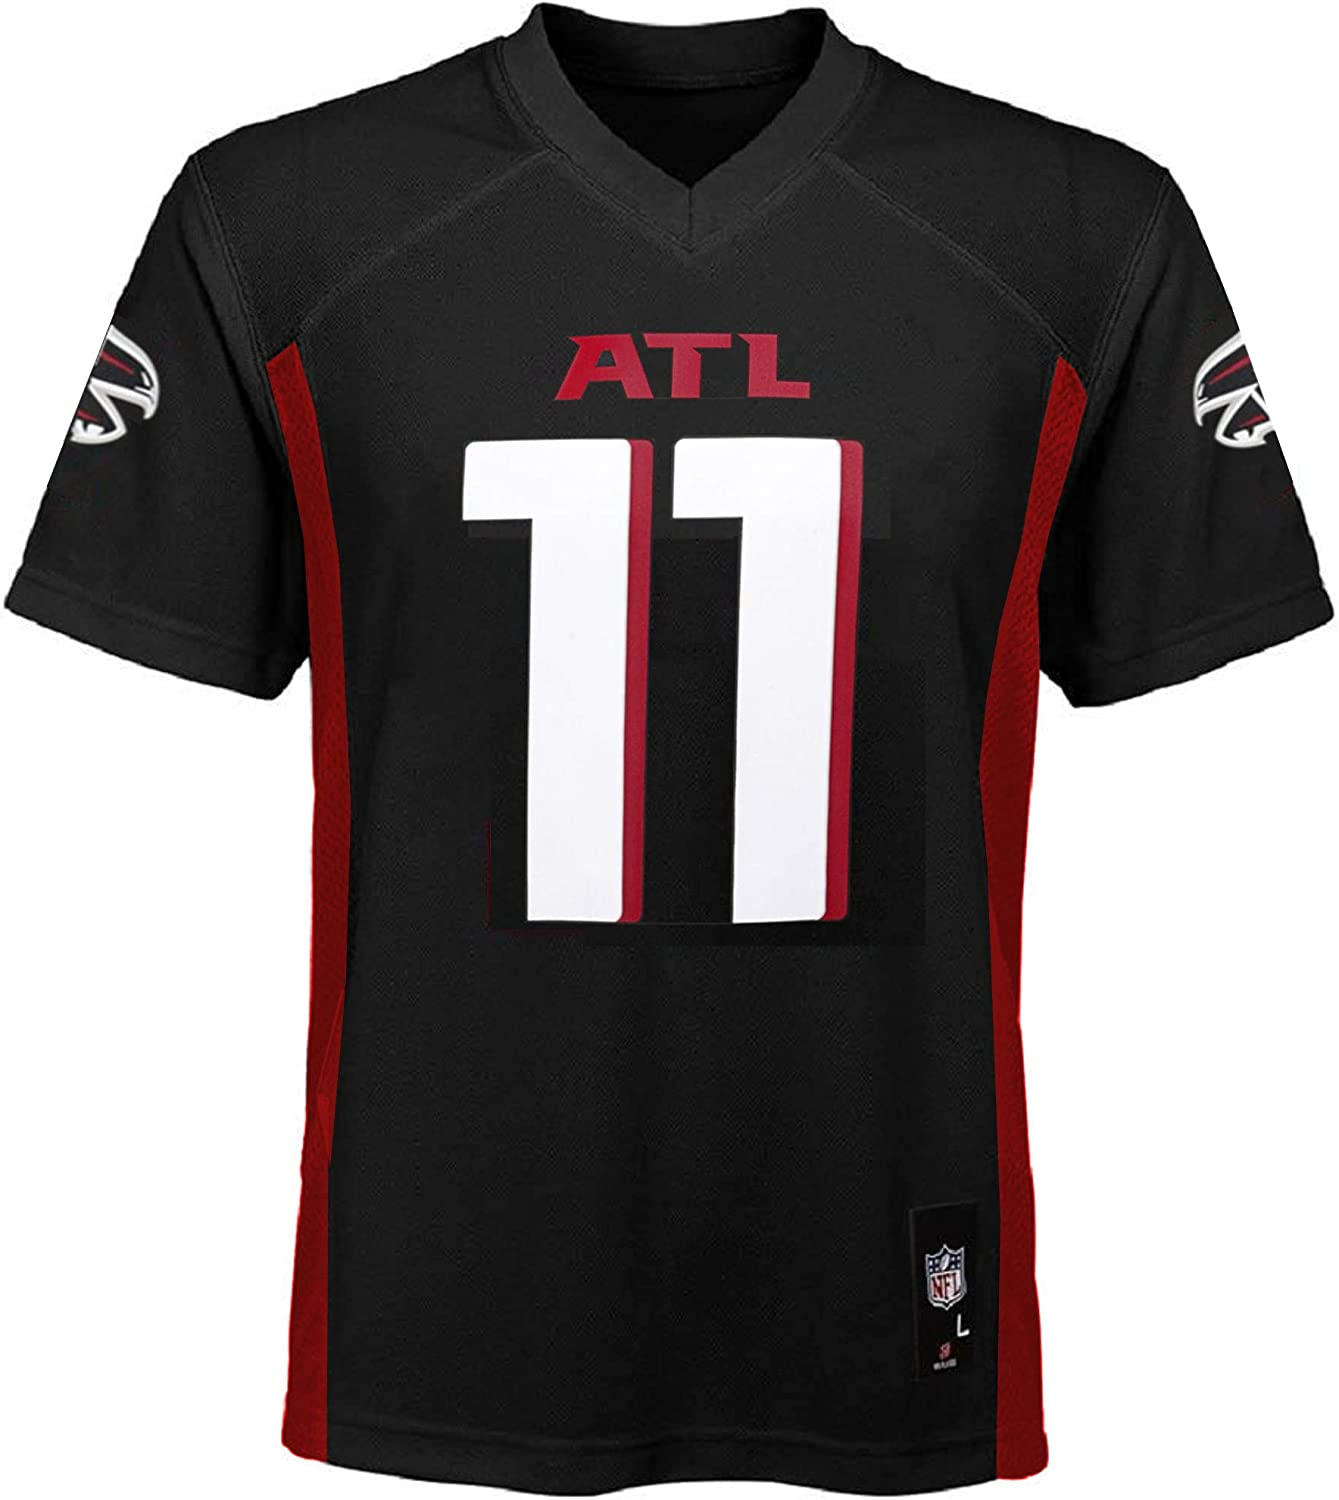 Outerstuff Julio Jones Atlanta Falcons NFL Boys Youth 8-20 Black Home Mid-Tier Jersey